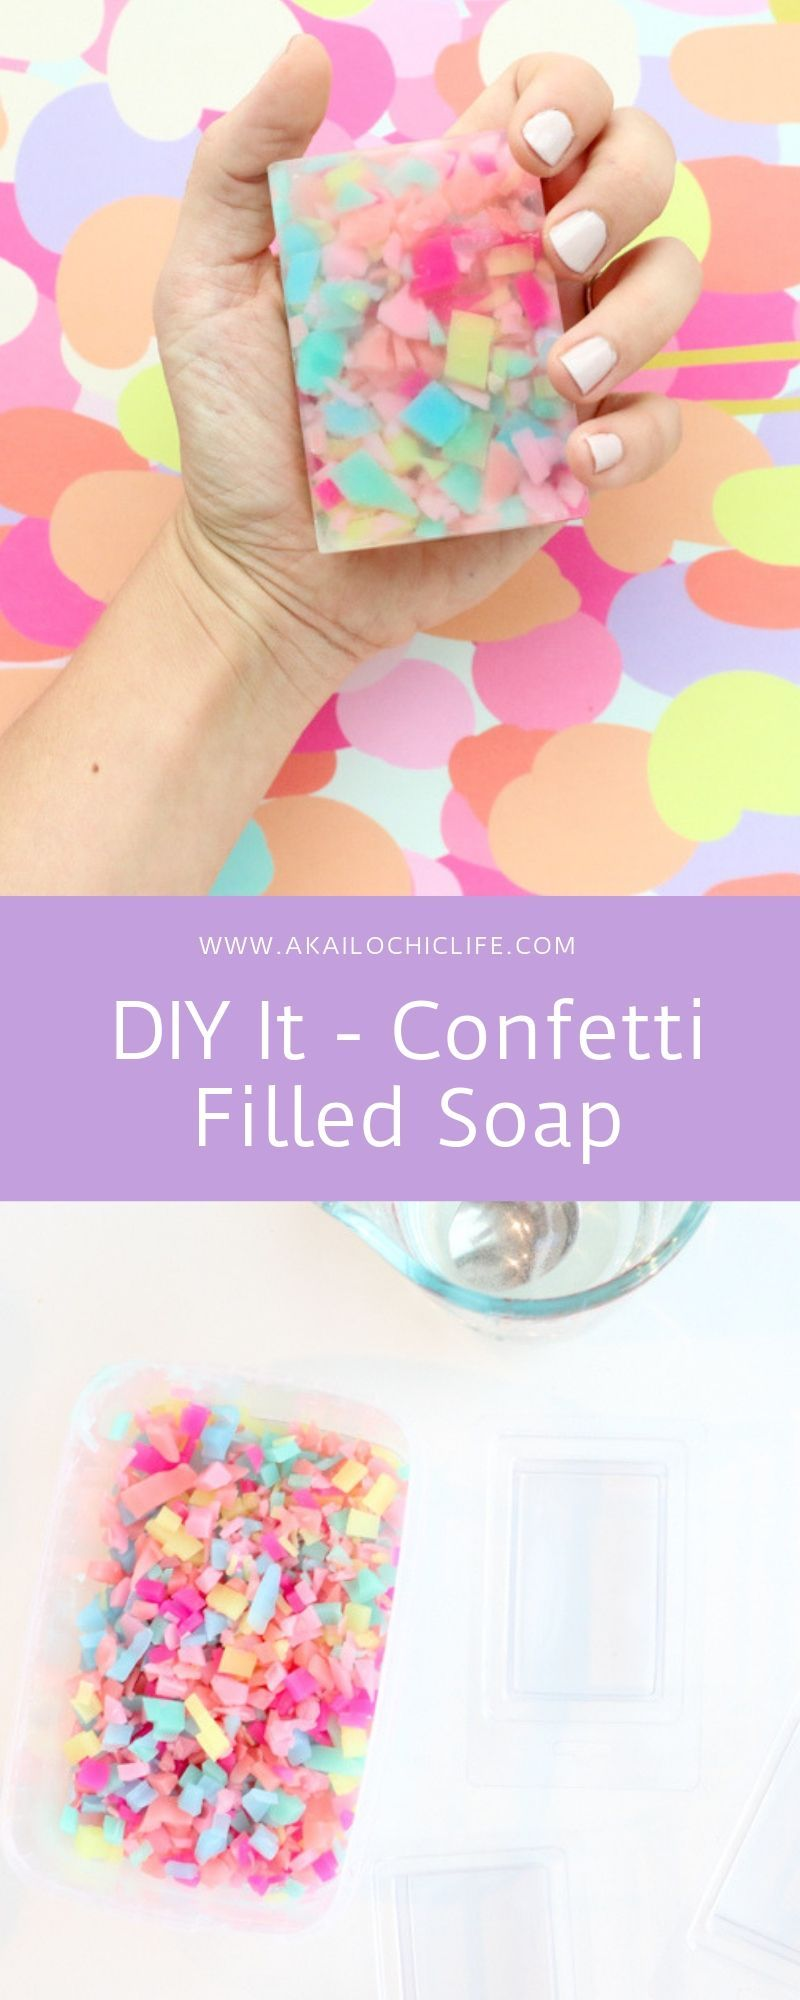 DIY It - Confetti Filled Soap - A Kailo Chic Life -   diy Tumblr gifts